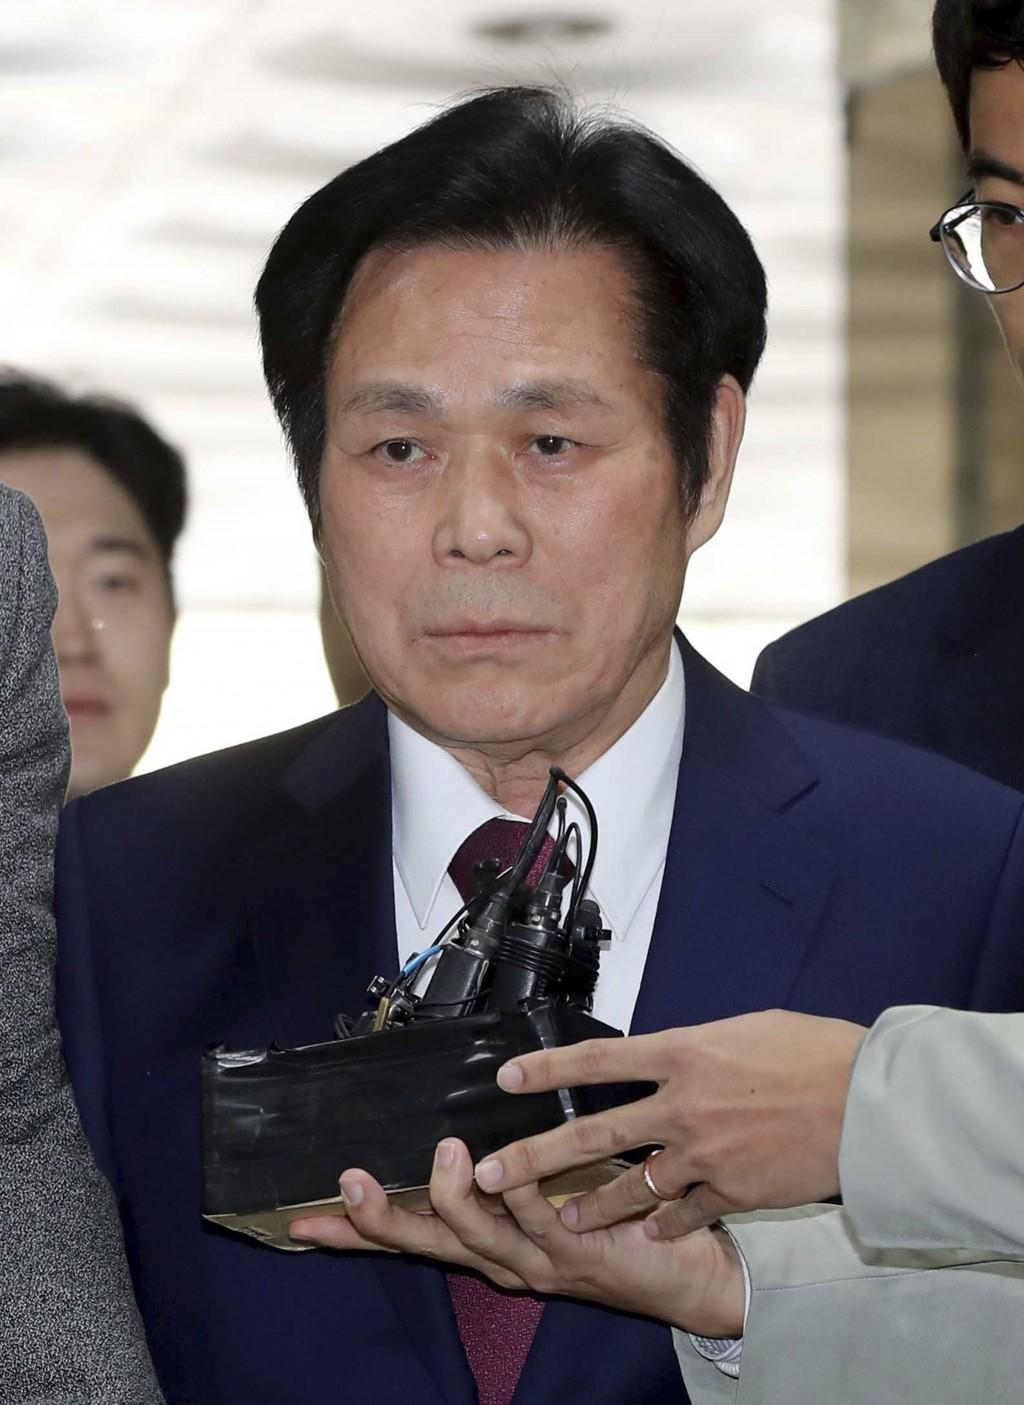 In this May 3, 2018 photo, A South Korean pastor Lee Jae-rock arrives for hearing at the Seoul Central District Court in Seoul, South Korea. Lee has b...